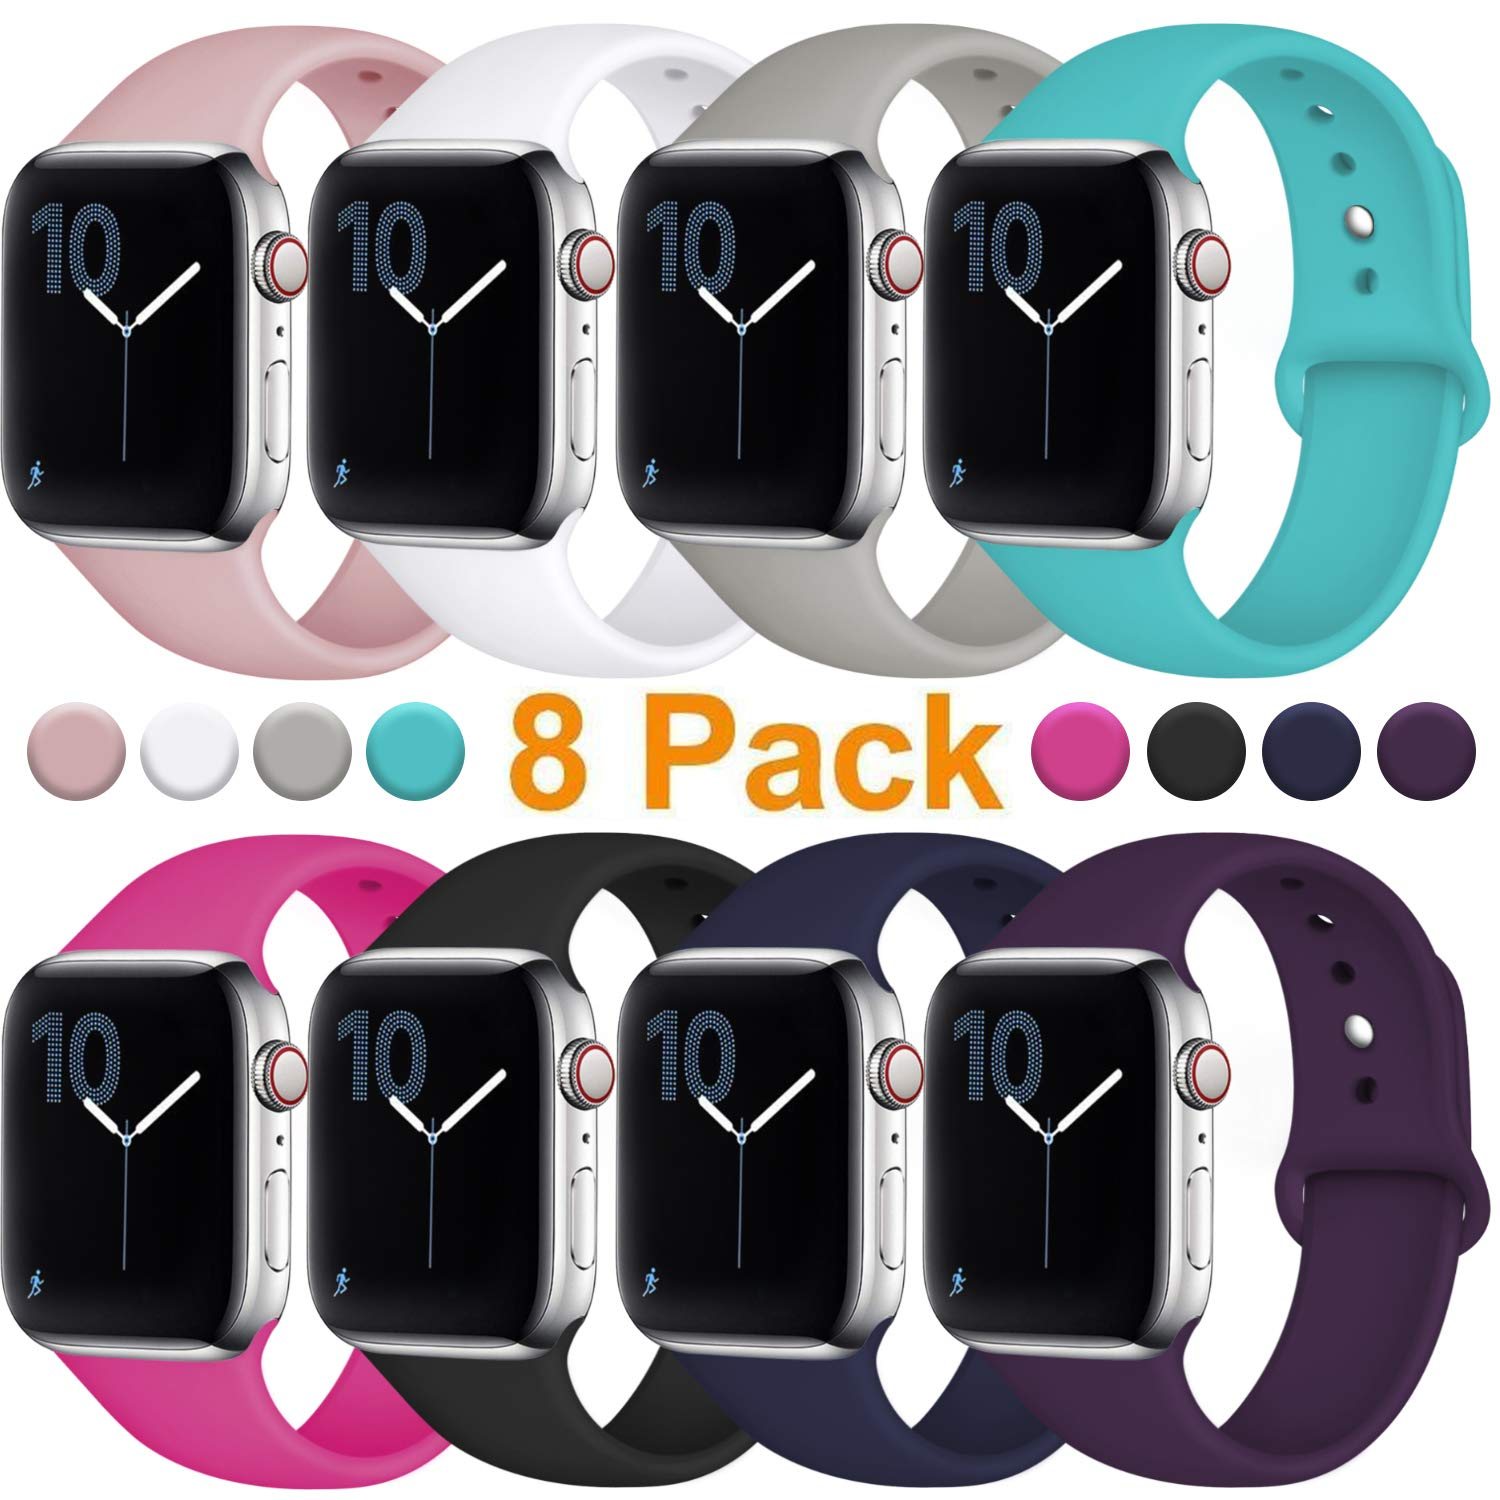 Fuleda Compatible with Apple Watch Band 40mm 38mm, Replacement Sport Bands for iWatch Series 4, Series 3, Series 2, Series 1, 8 Pack, S/M